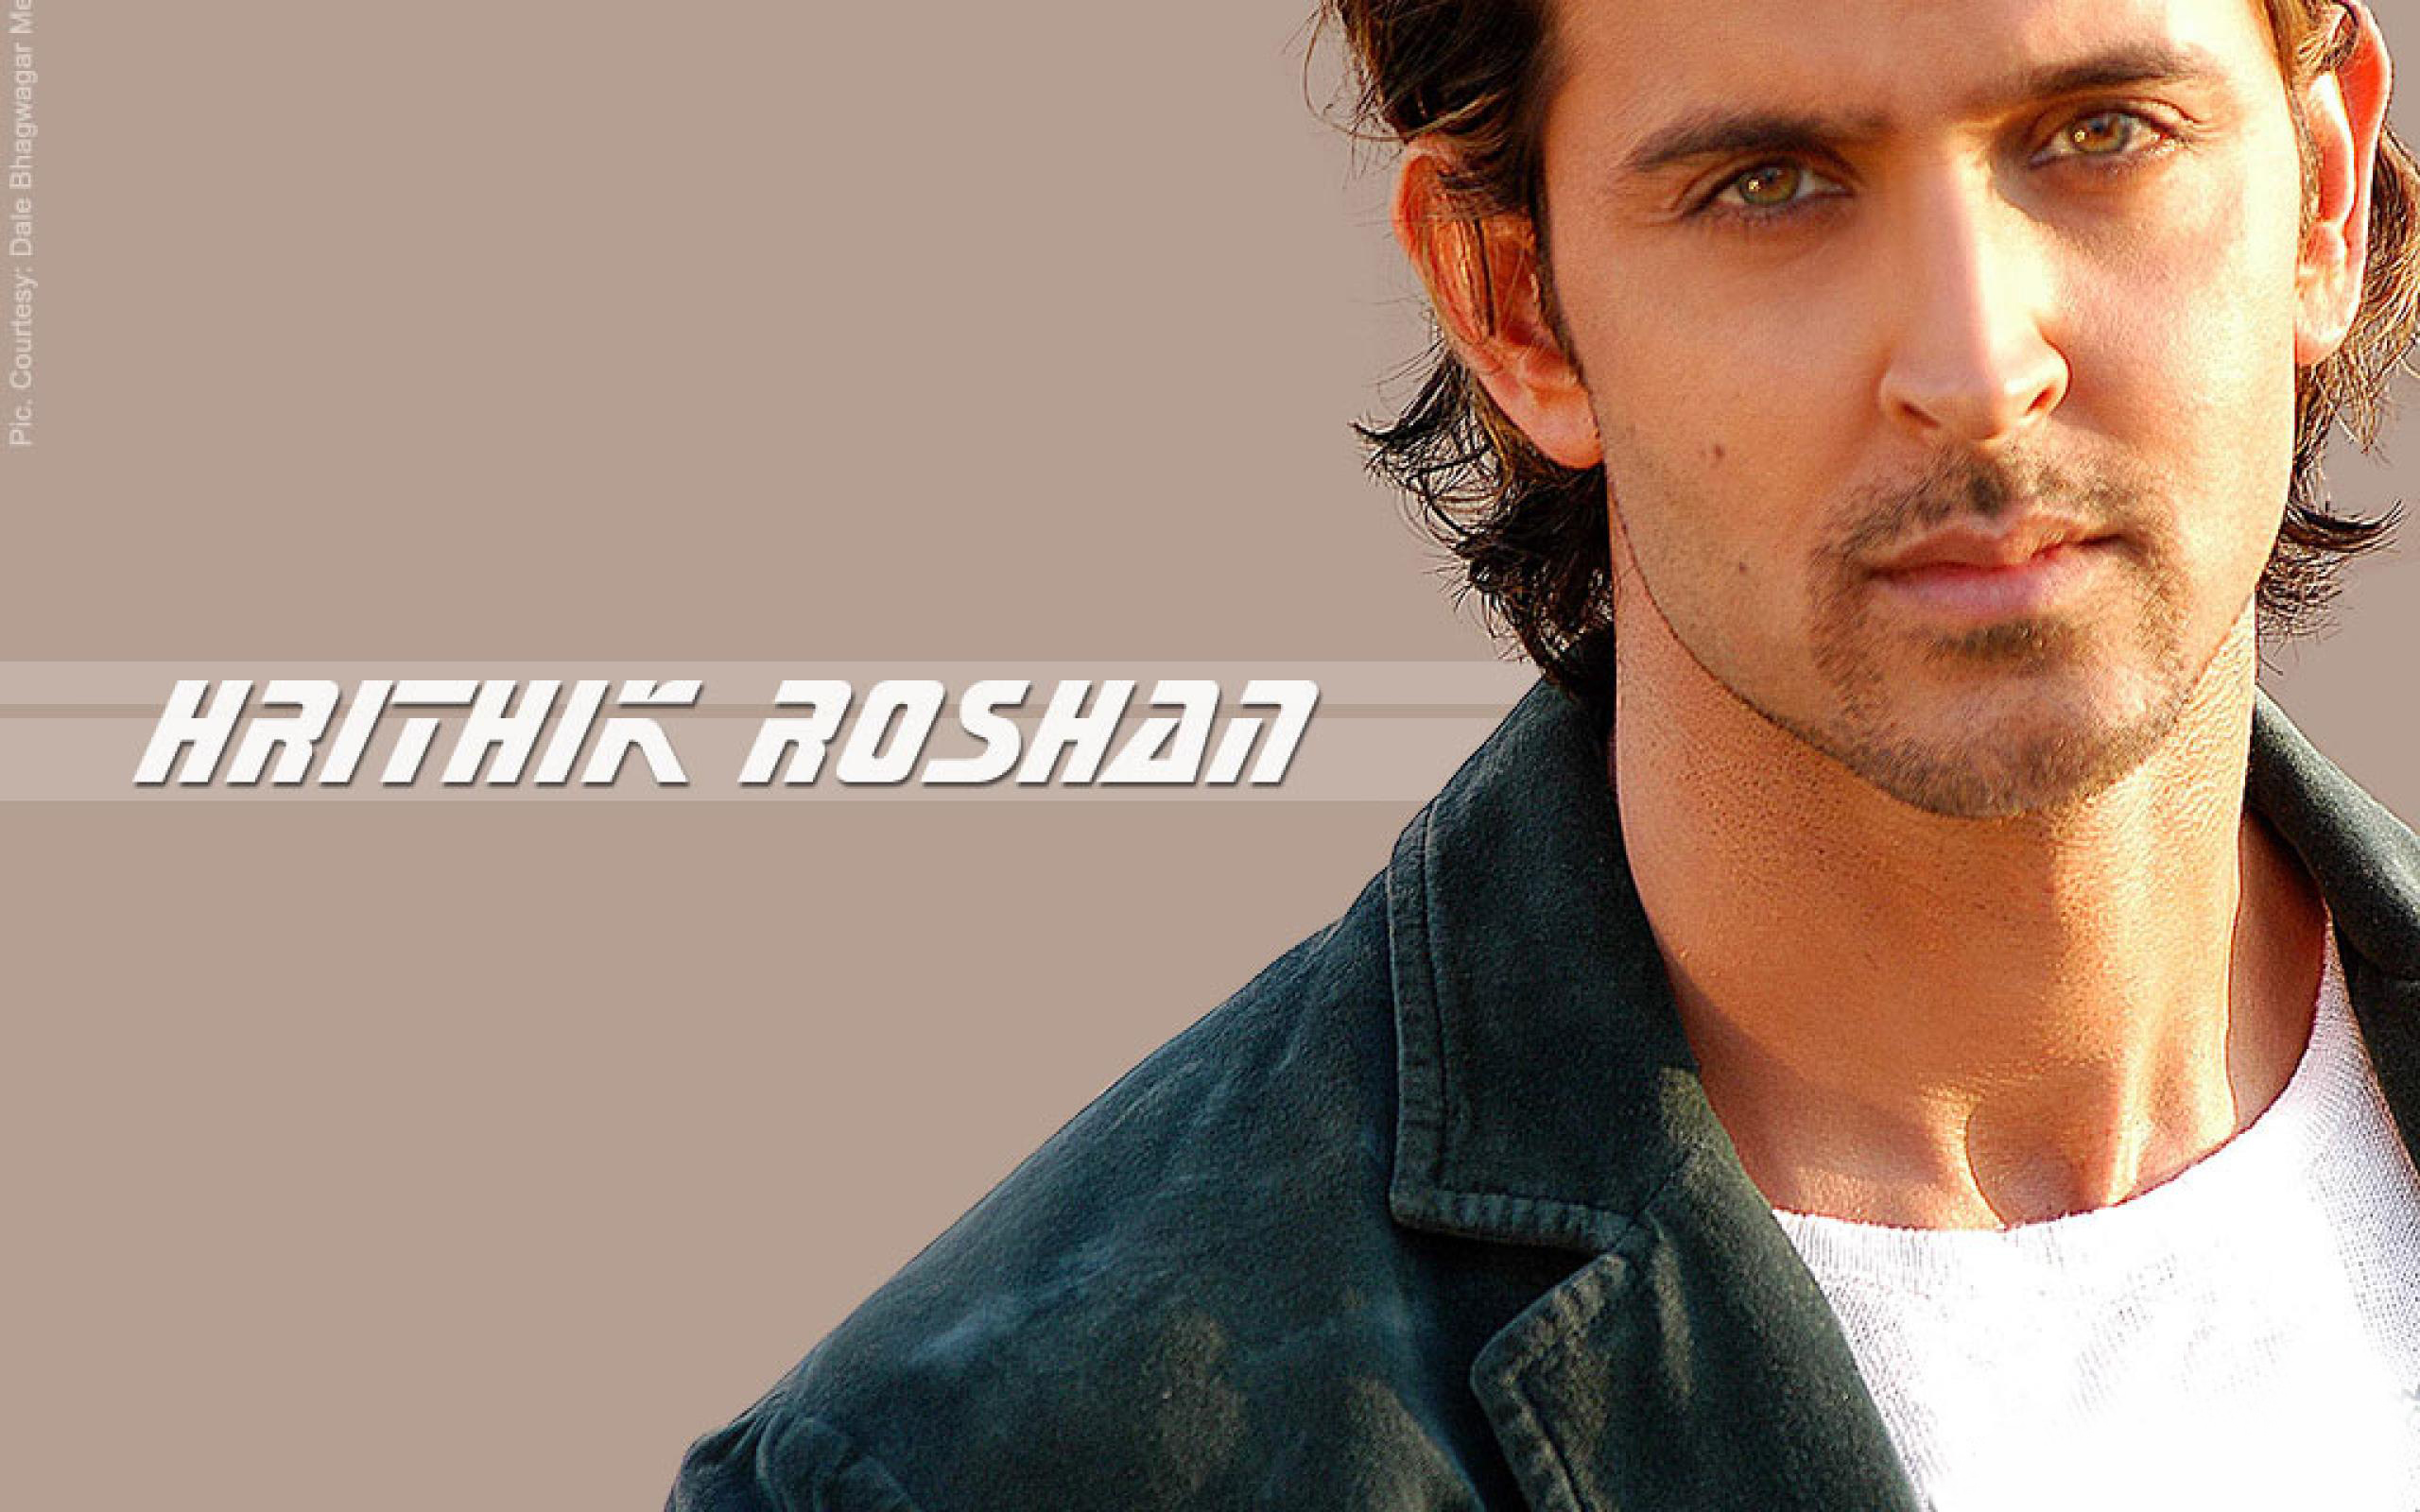 Actors Wallpapers Download: Hrithik Roshan Wallpapers High Resolution And Quality Download